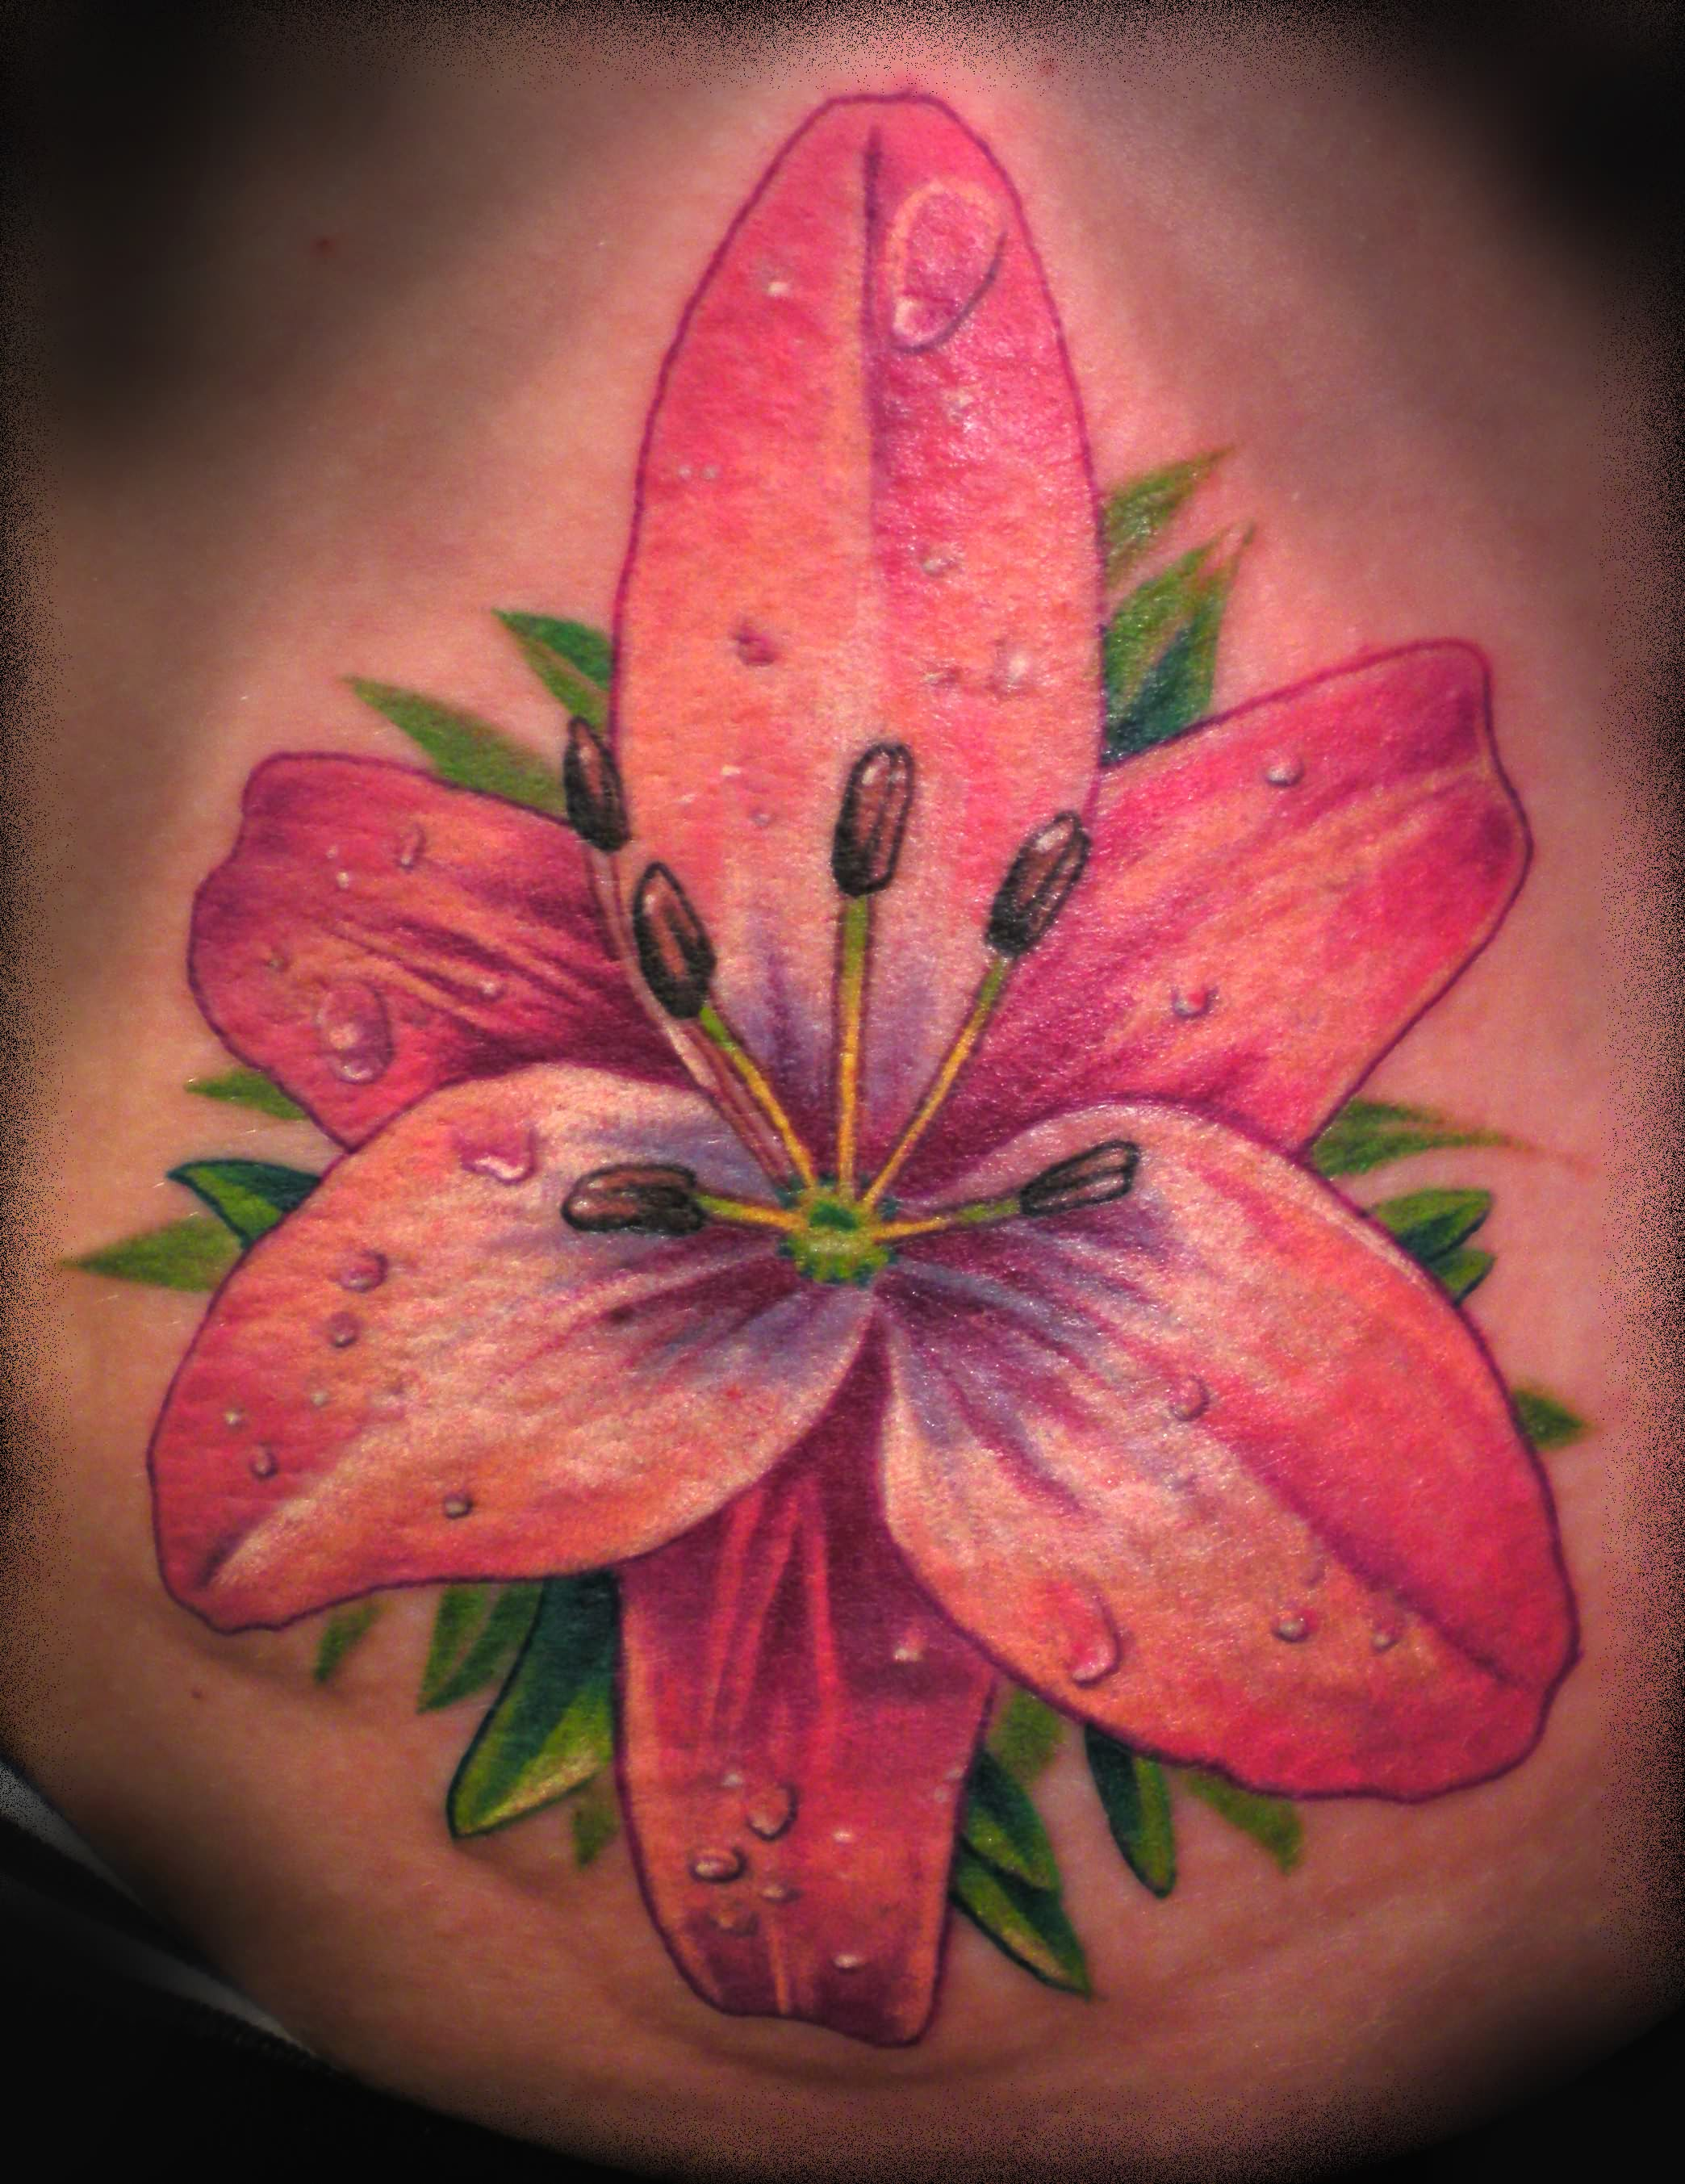 Lily Flower Tattoo With Some Dew Drops